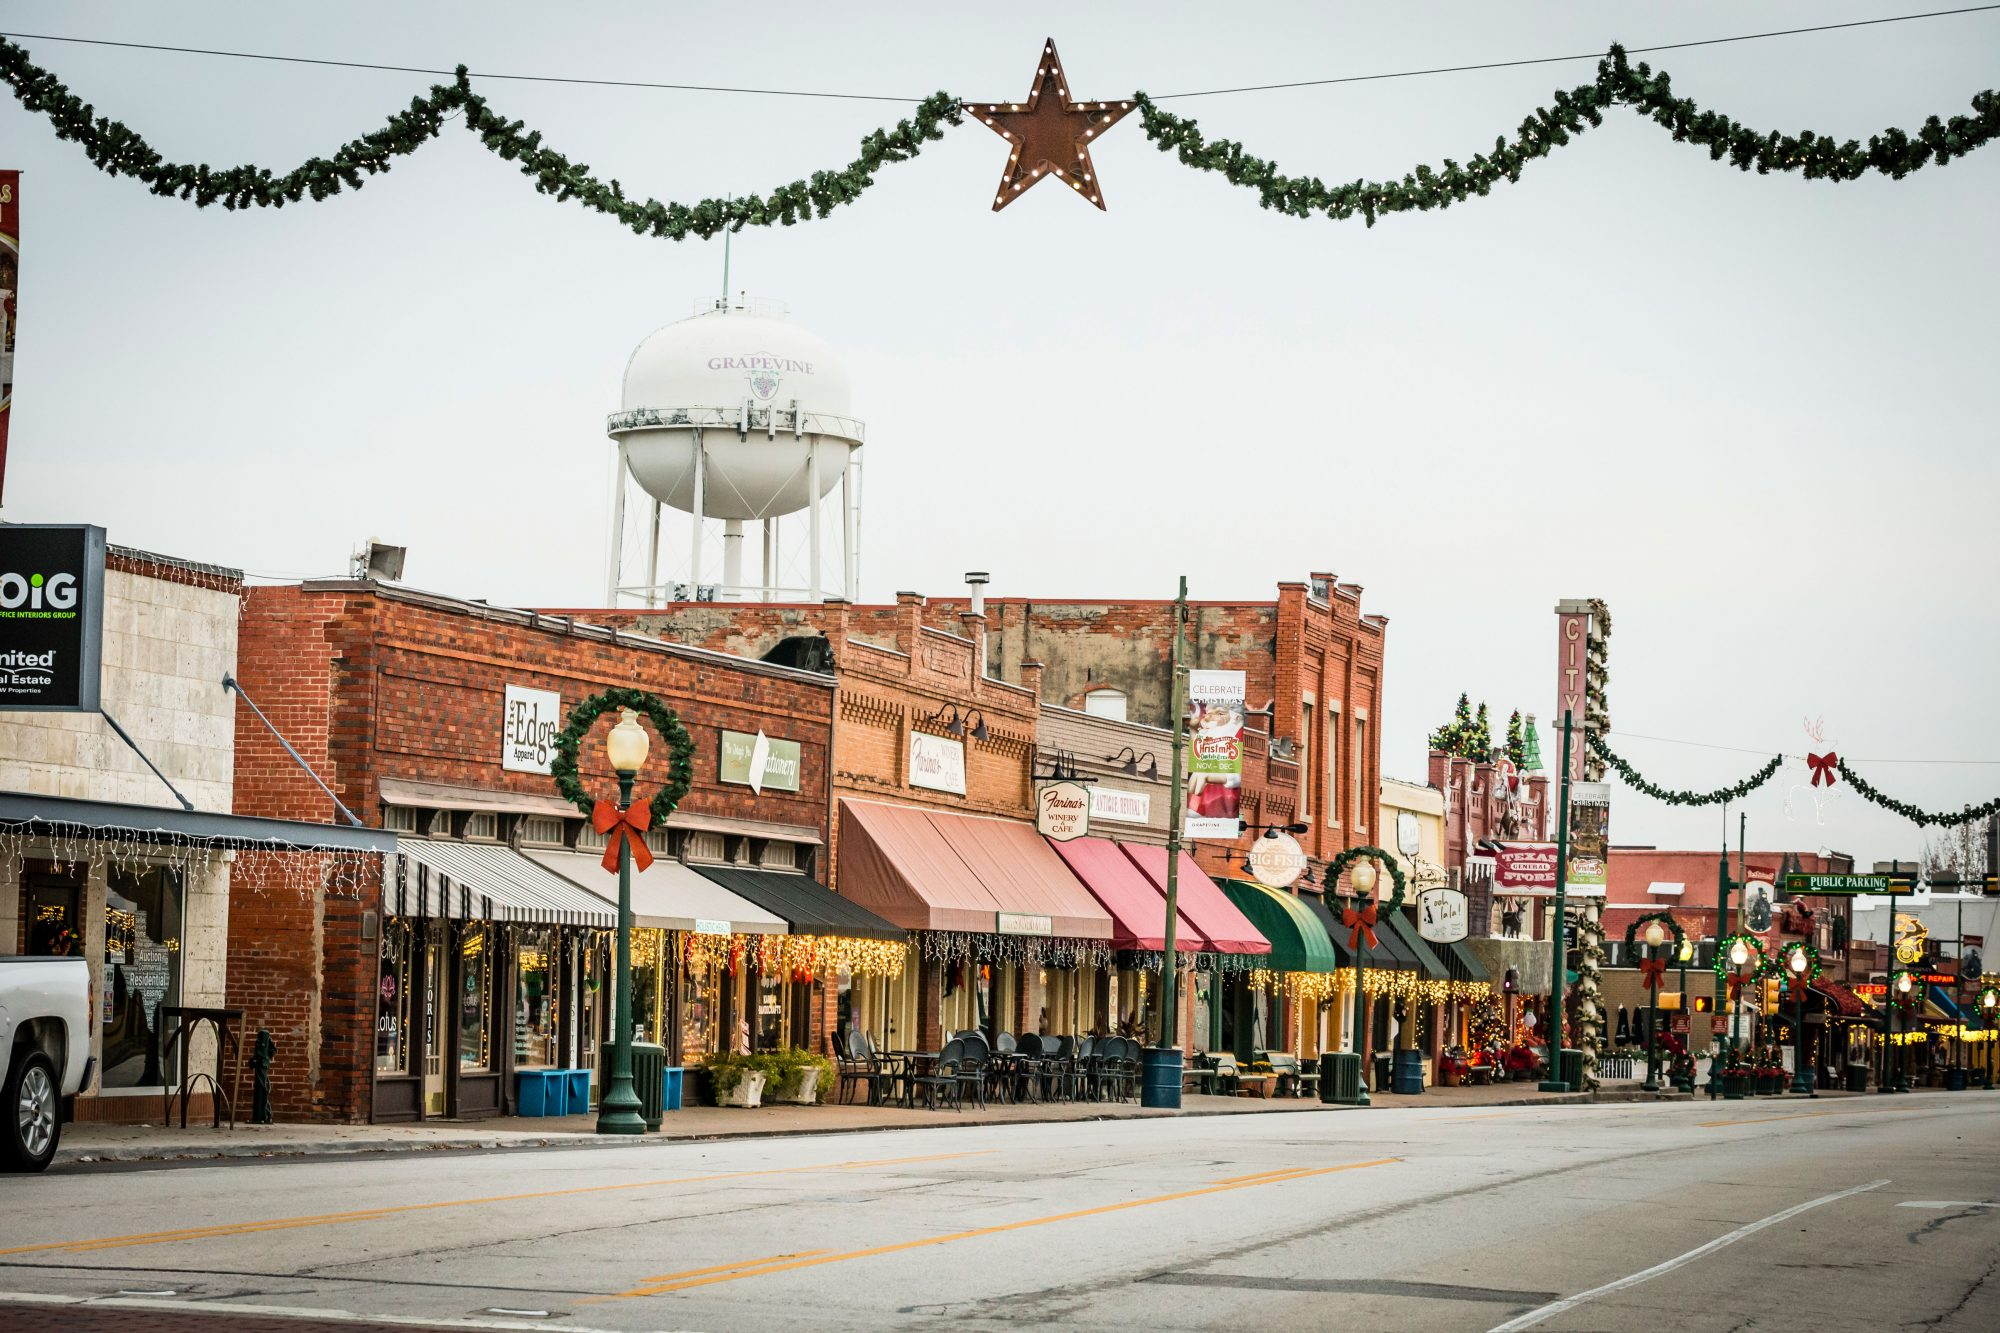 Downtown Grapevine, TX at Christmas